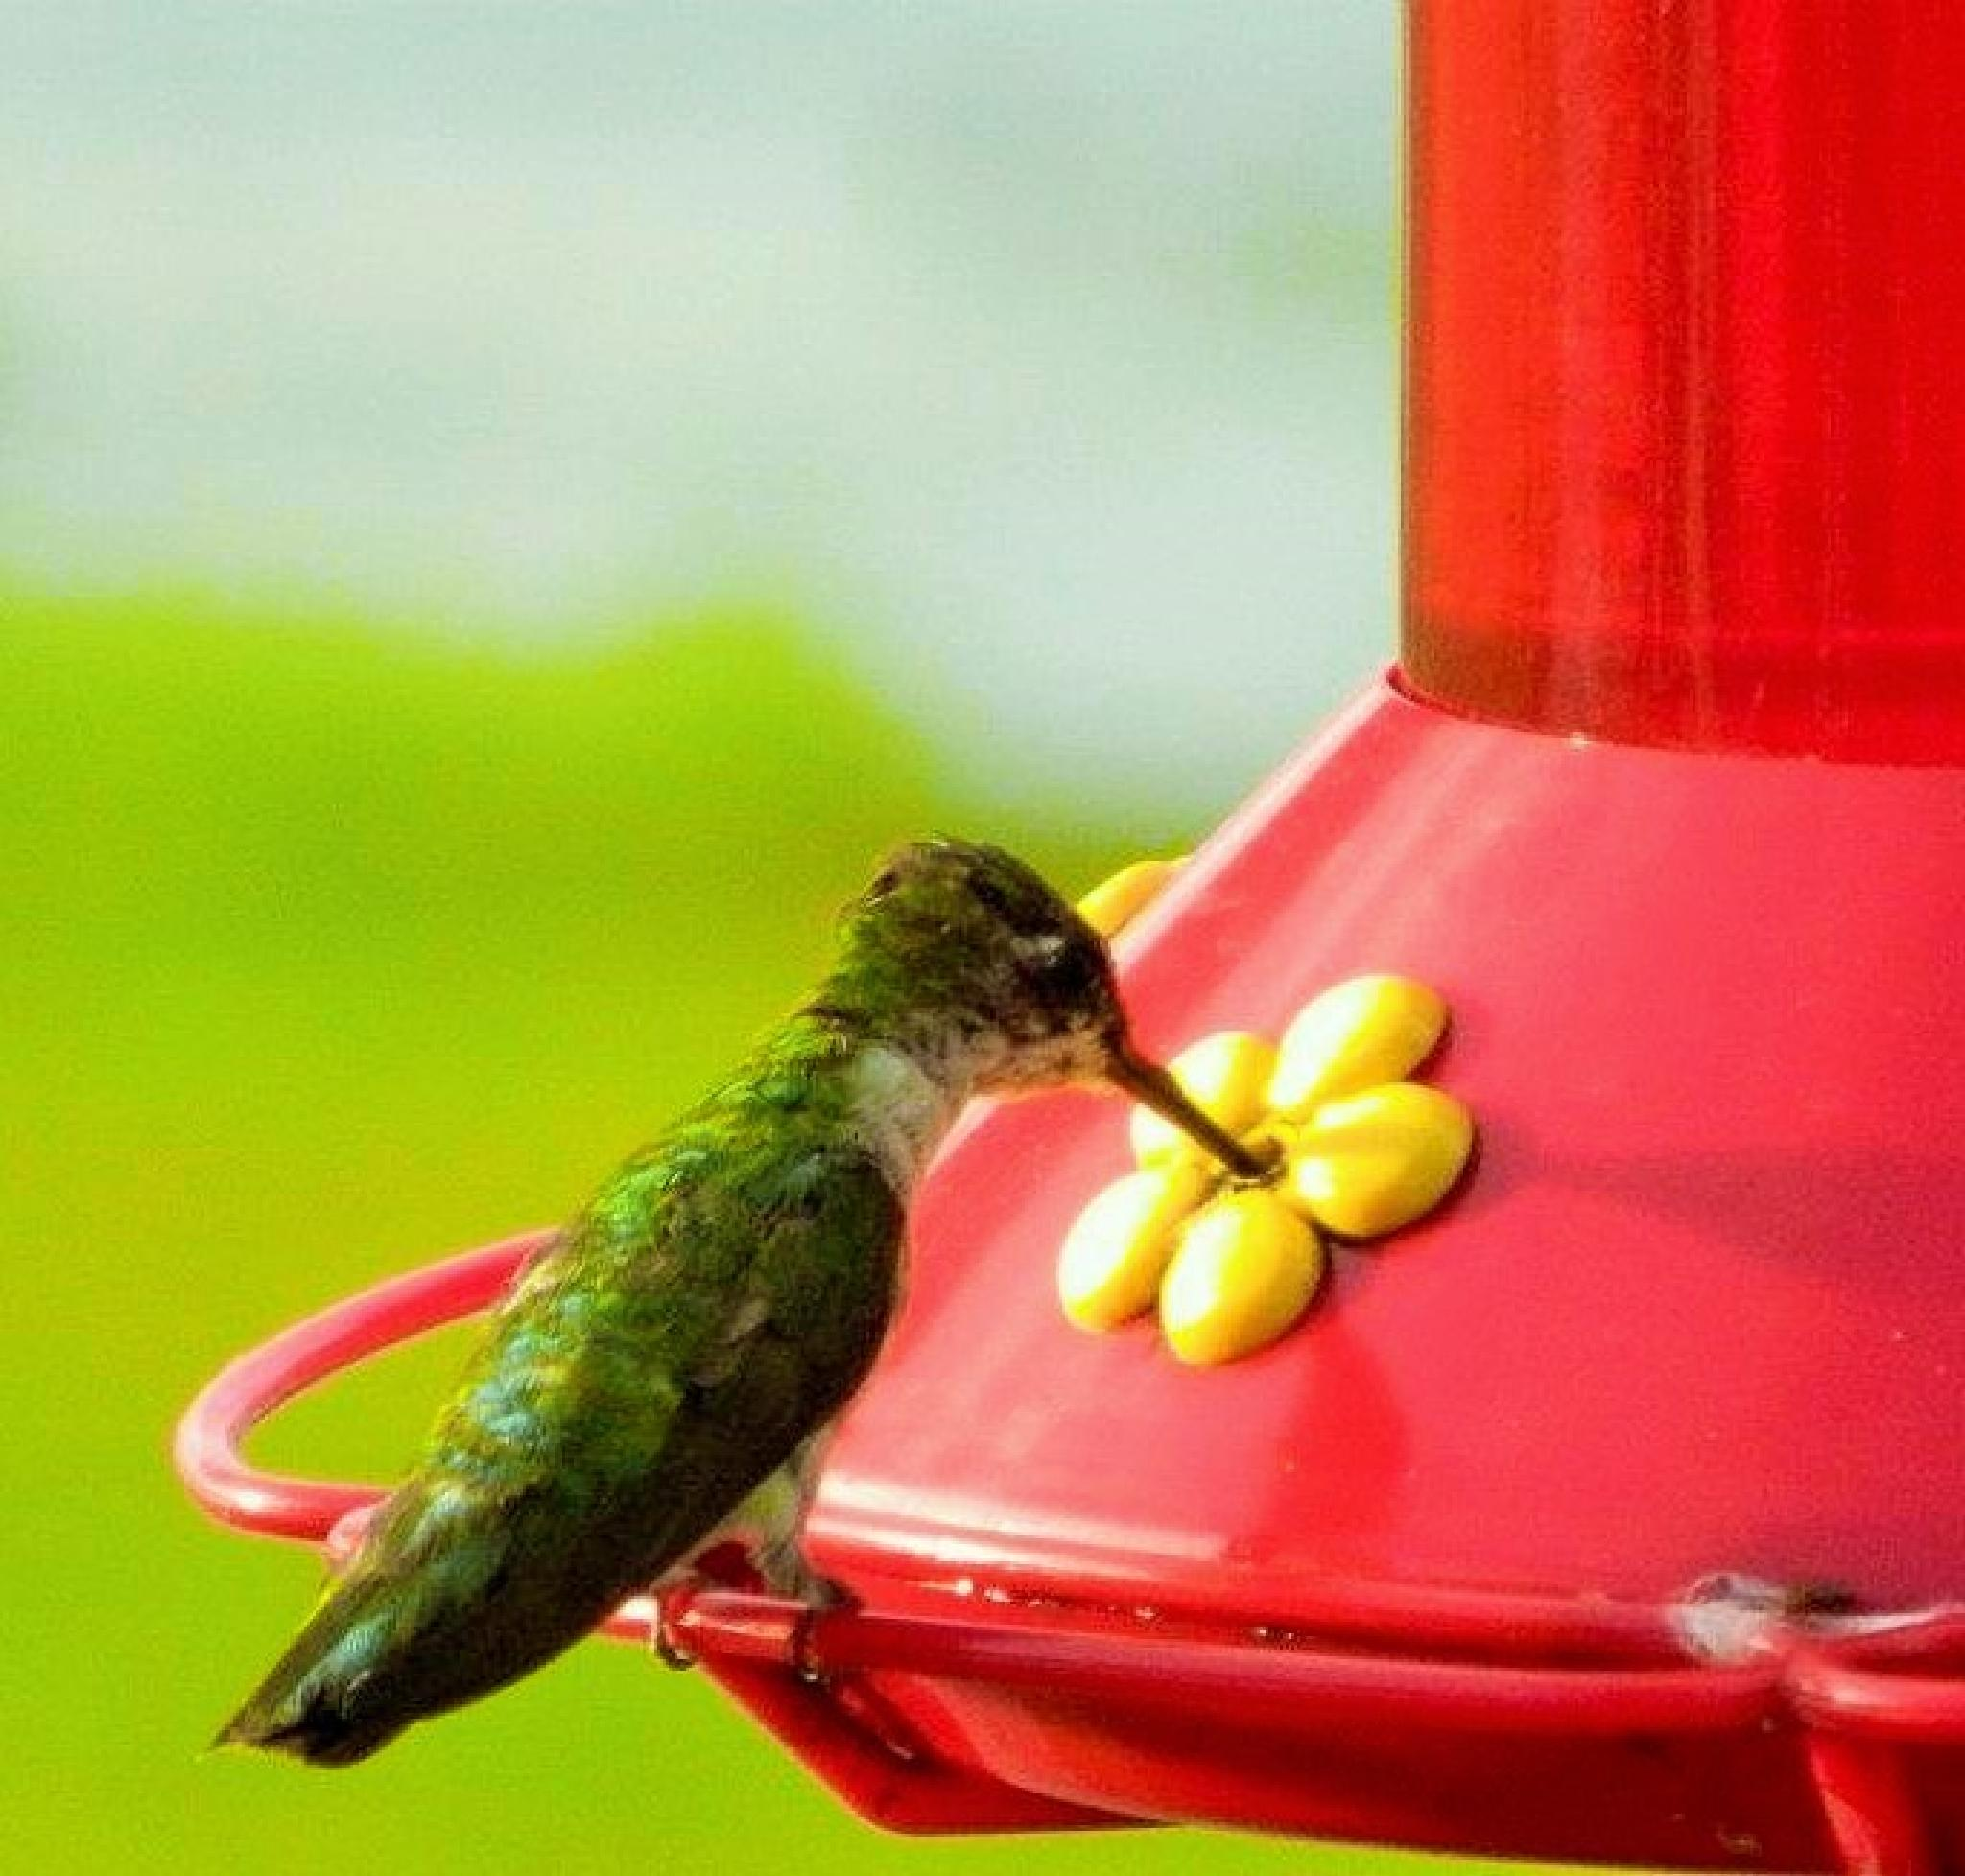 humming bird by strimlett